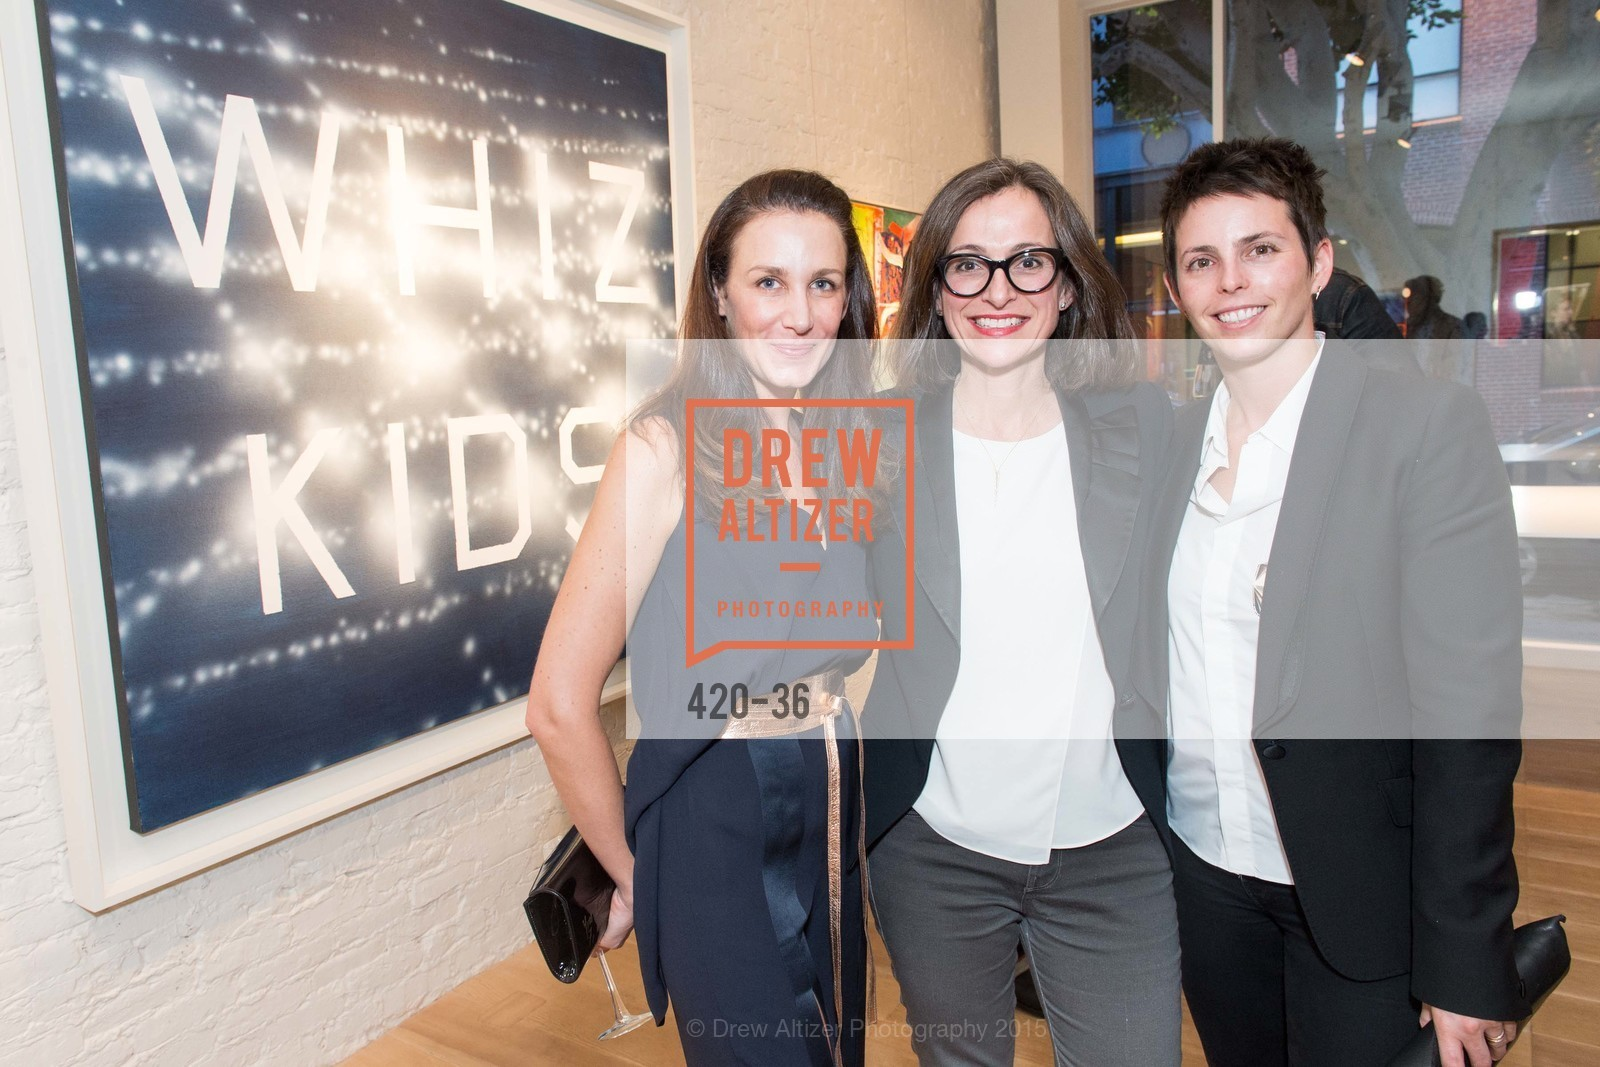 Catecine Milliot, Sarah Thornton, Jessica Silverman, Post War and Contemporary preview at Hedge Gallery , Hedge Gallery. 501 Pacific Ave, San Francisco, CA 94133, April 16th, 2015,Drew Altizer, Drew Altizer Photography, full-service agency, private events, San Francisco photographer, photographer california